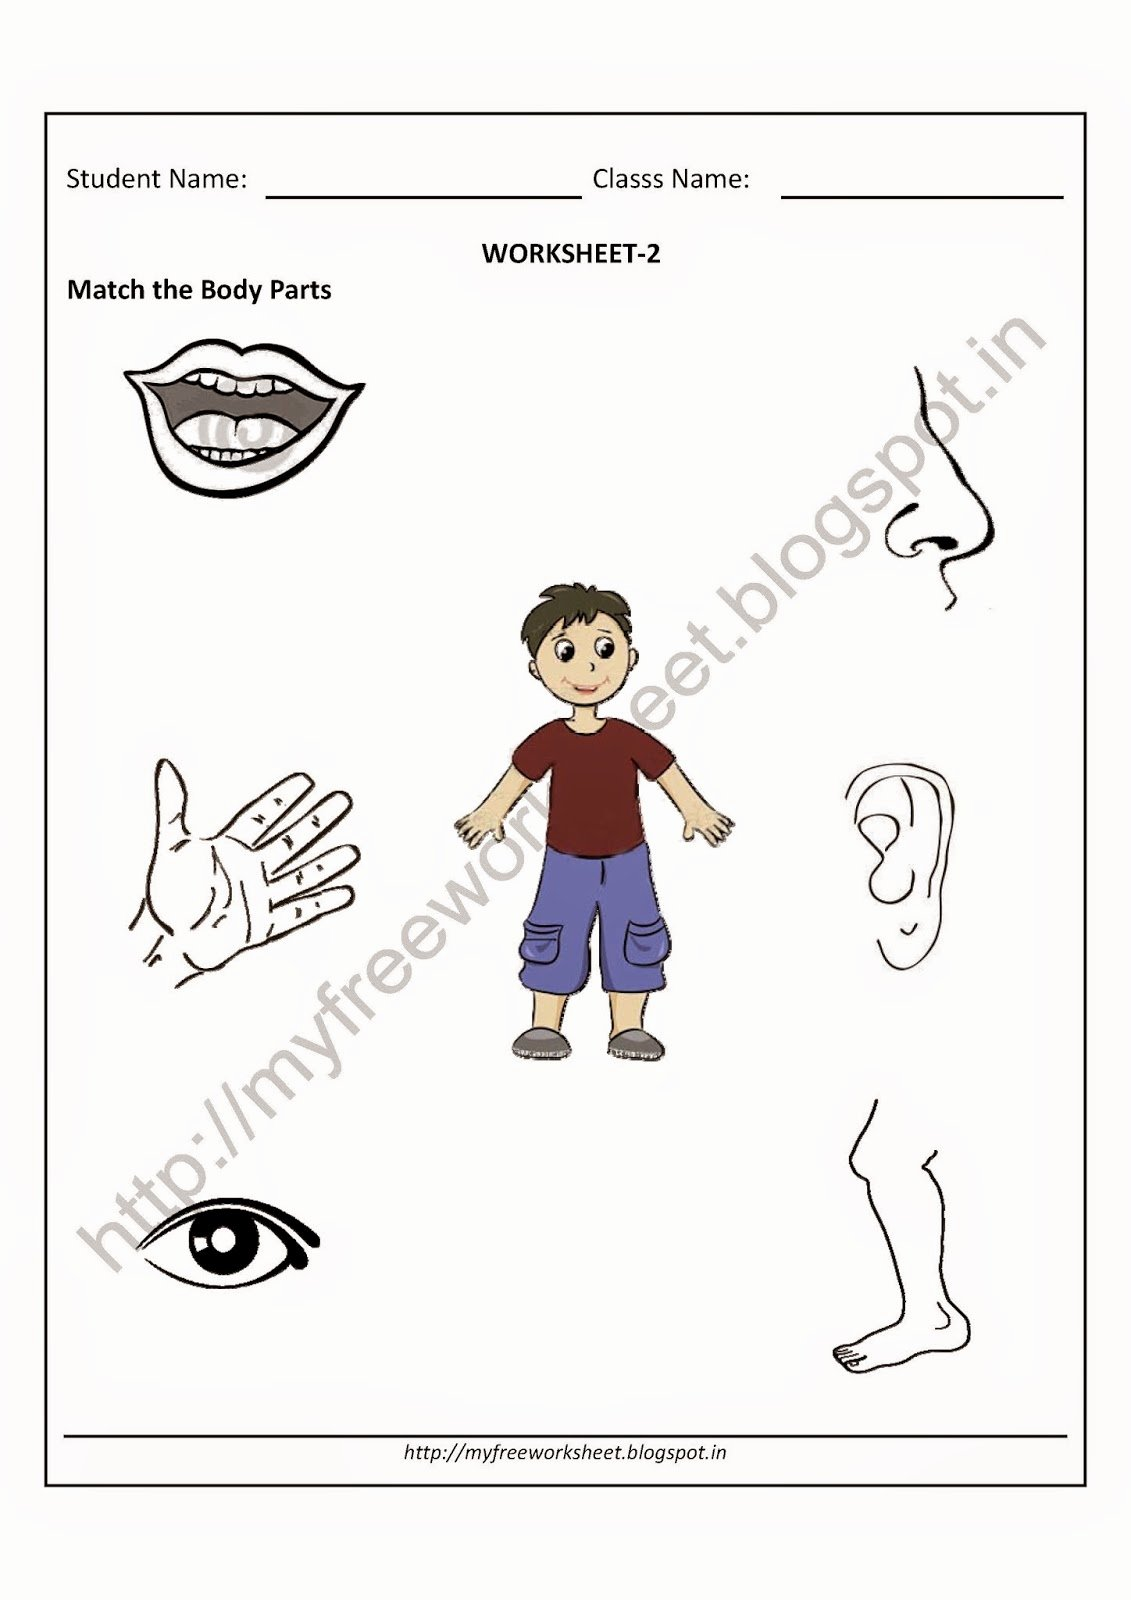 Body Parts Worksheets for Preschoolers Lovely Pdf Free for Nursery Kids Match the Body Parts Worksheet Evs